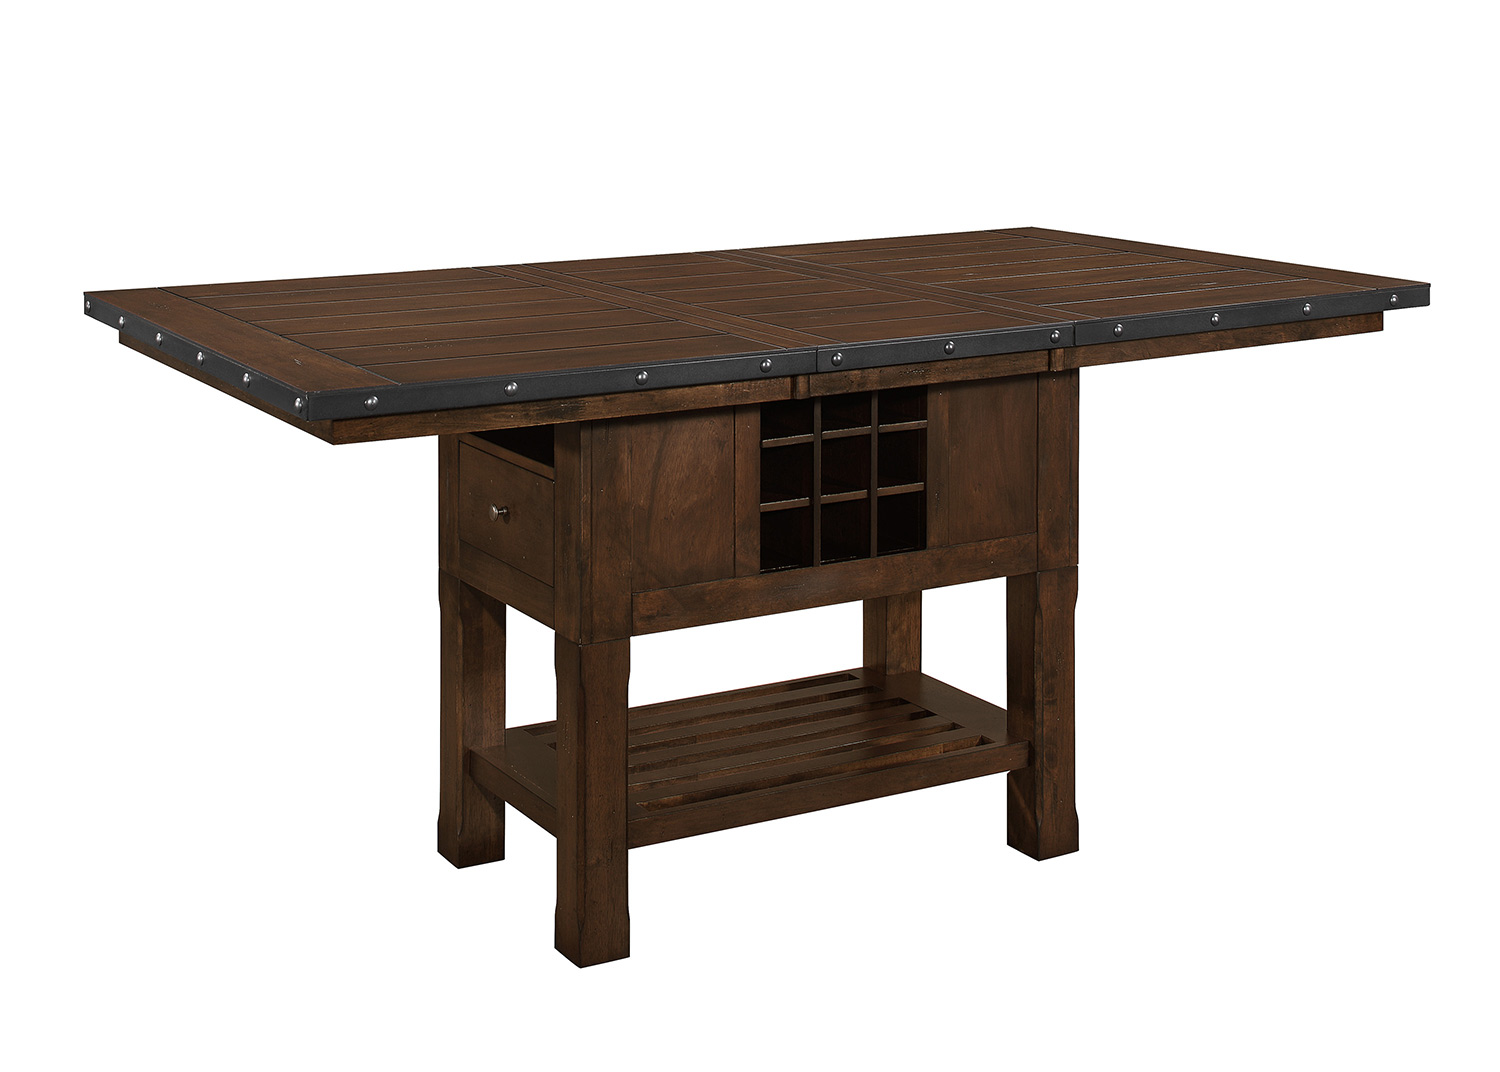 Homelegance Schleiger Counter Height DiningTable - Dark Brown